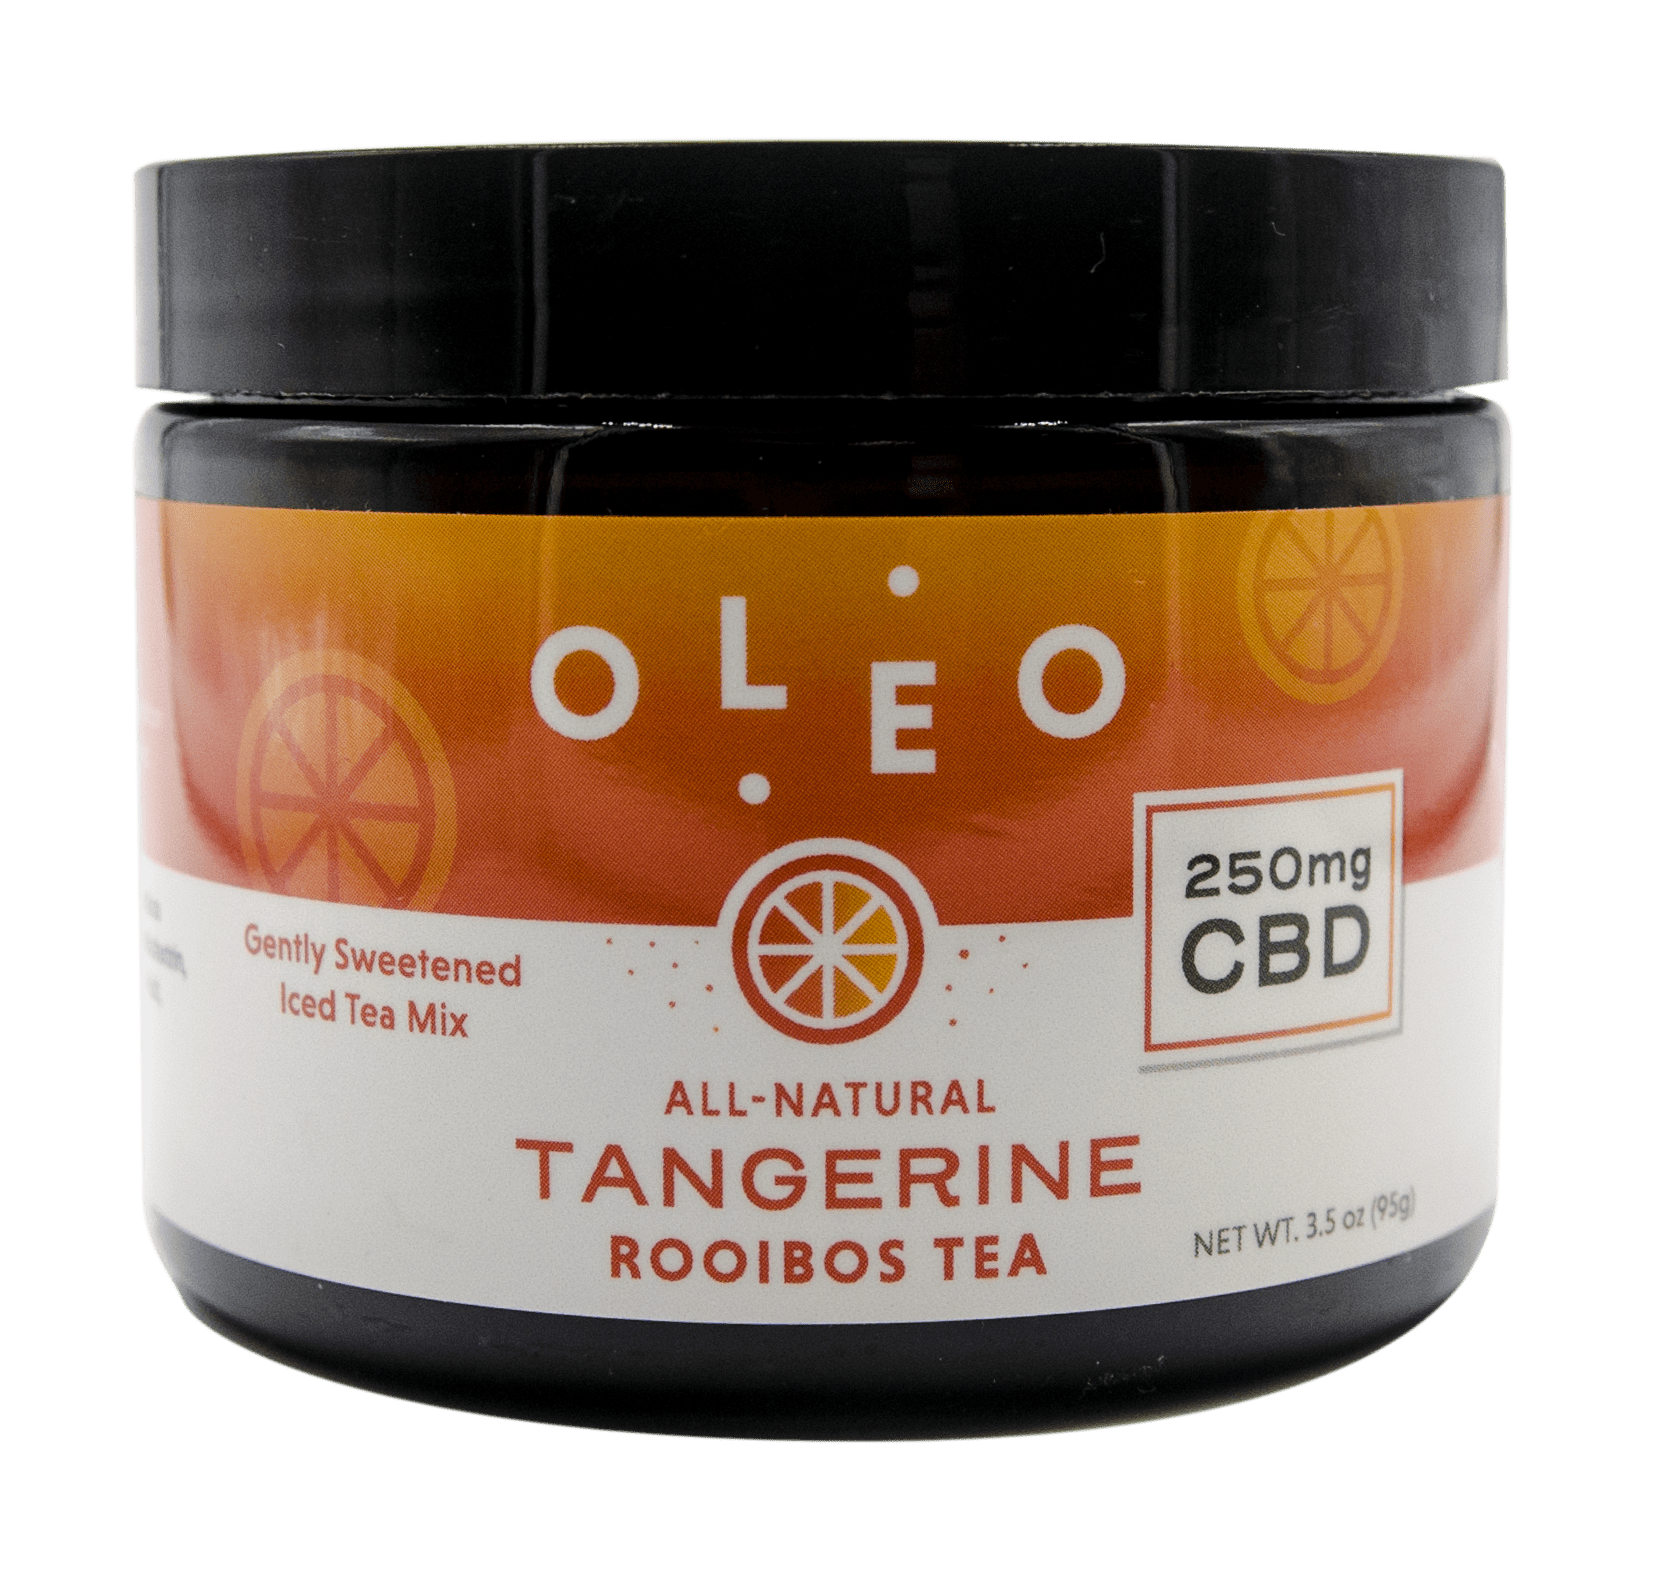 Oleo 250mg CBD Tea Mix